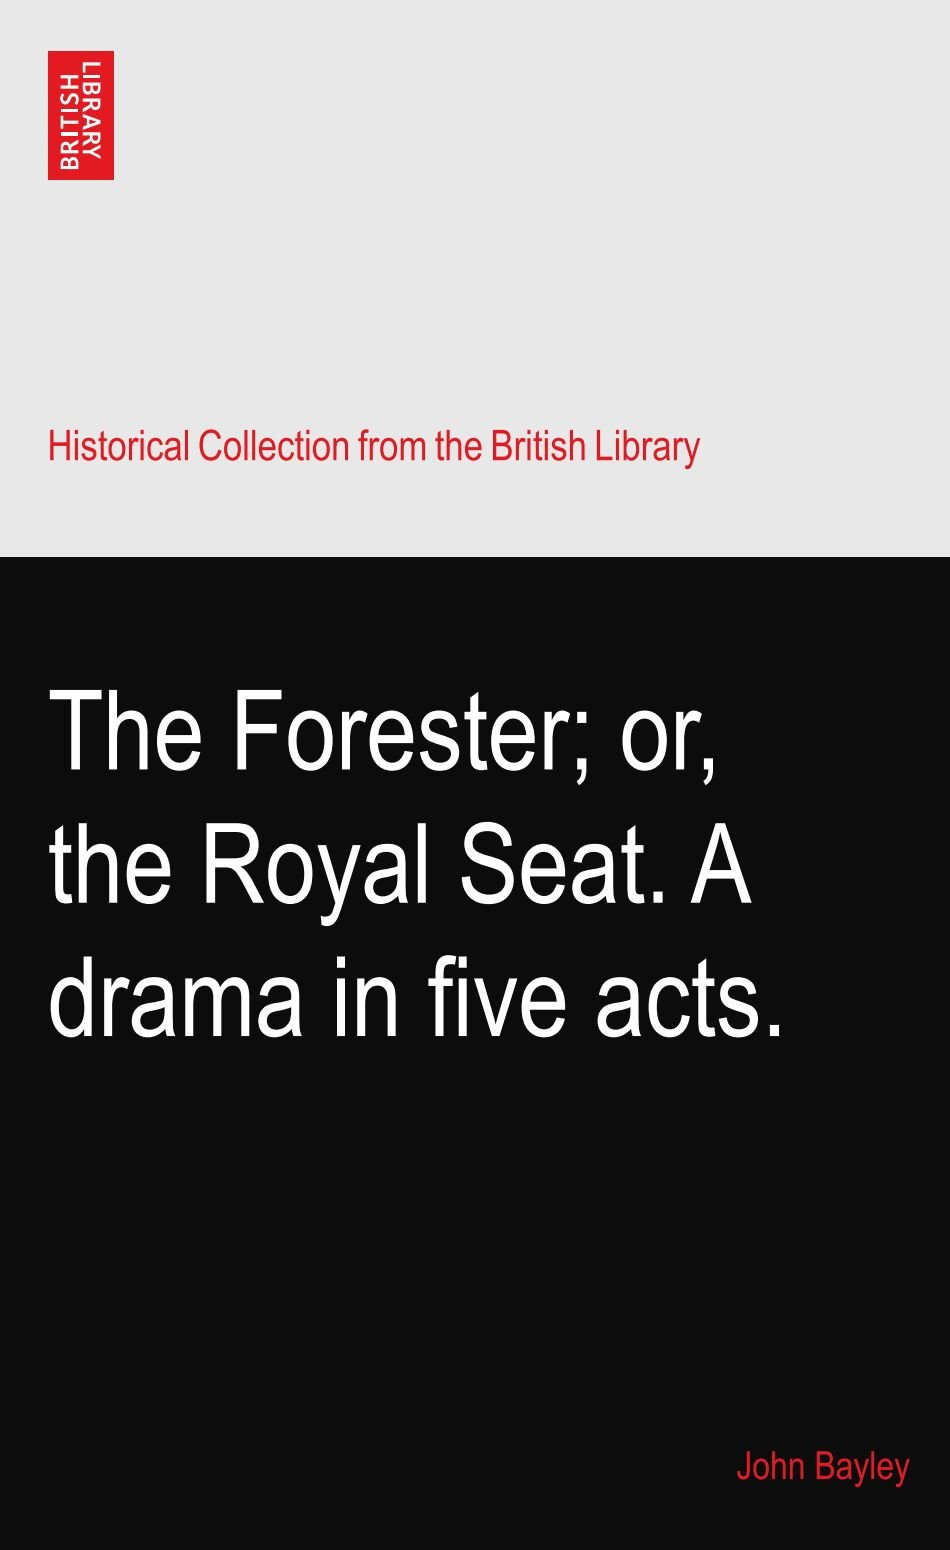 The Forester; or, the Royal Seat. A drama in five acts. ebook